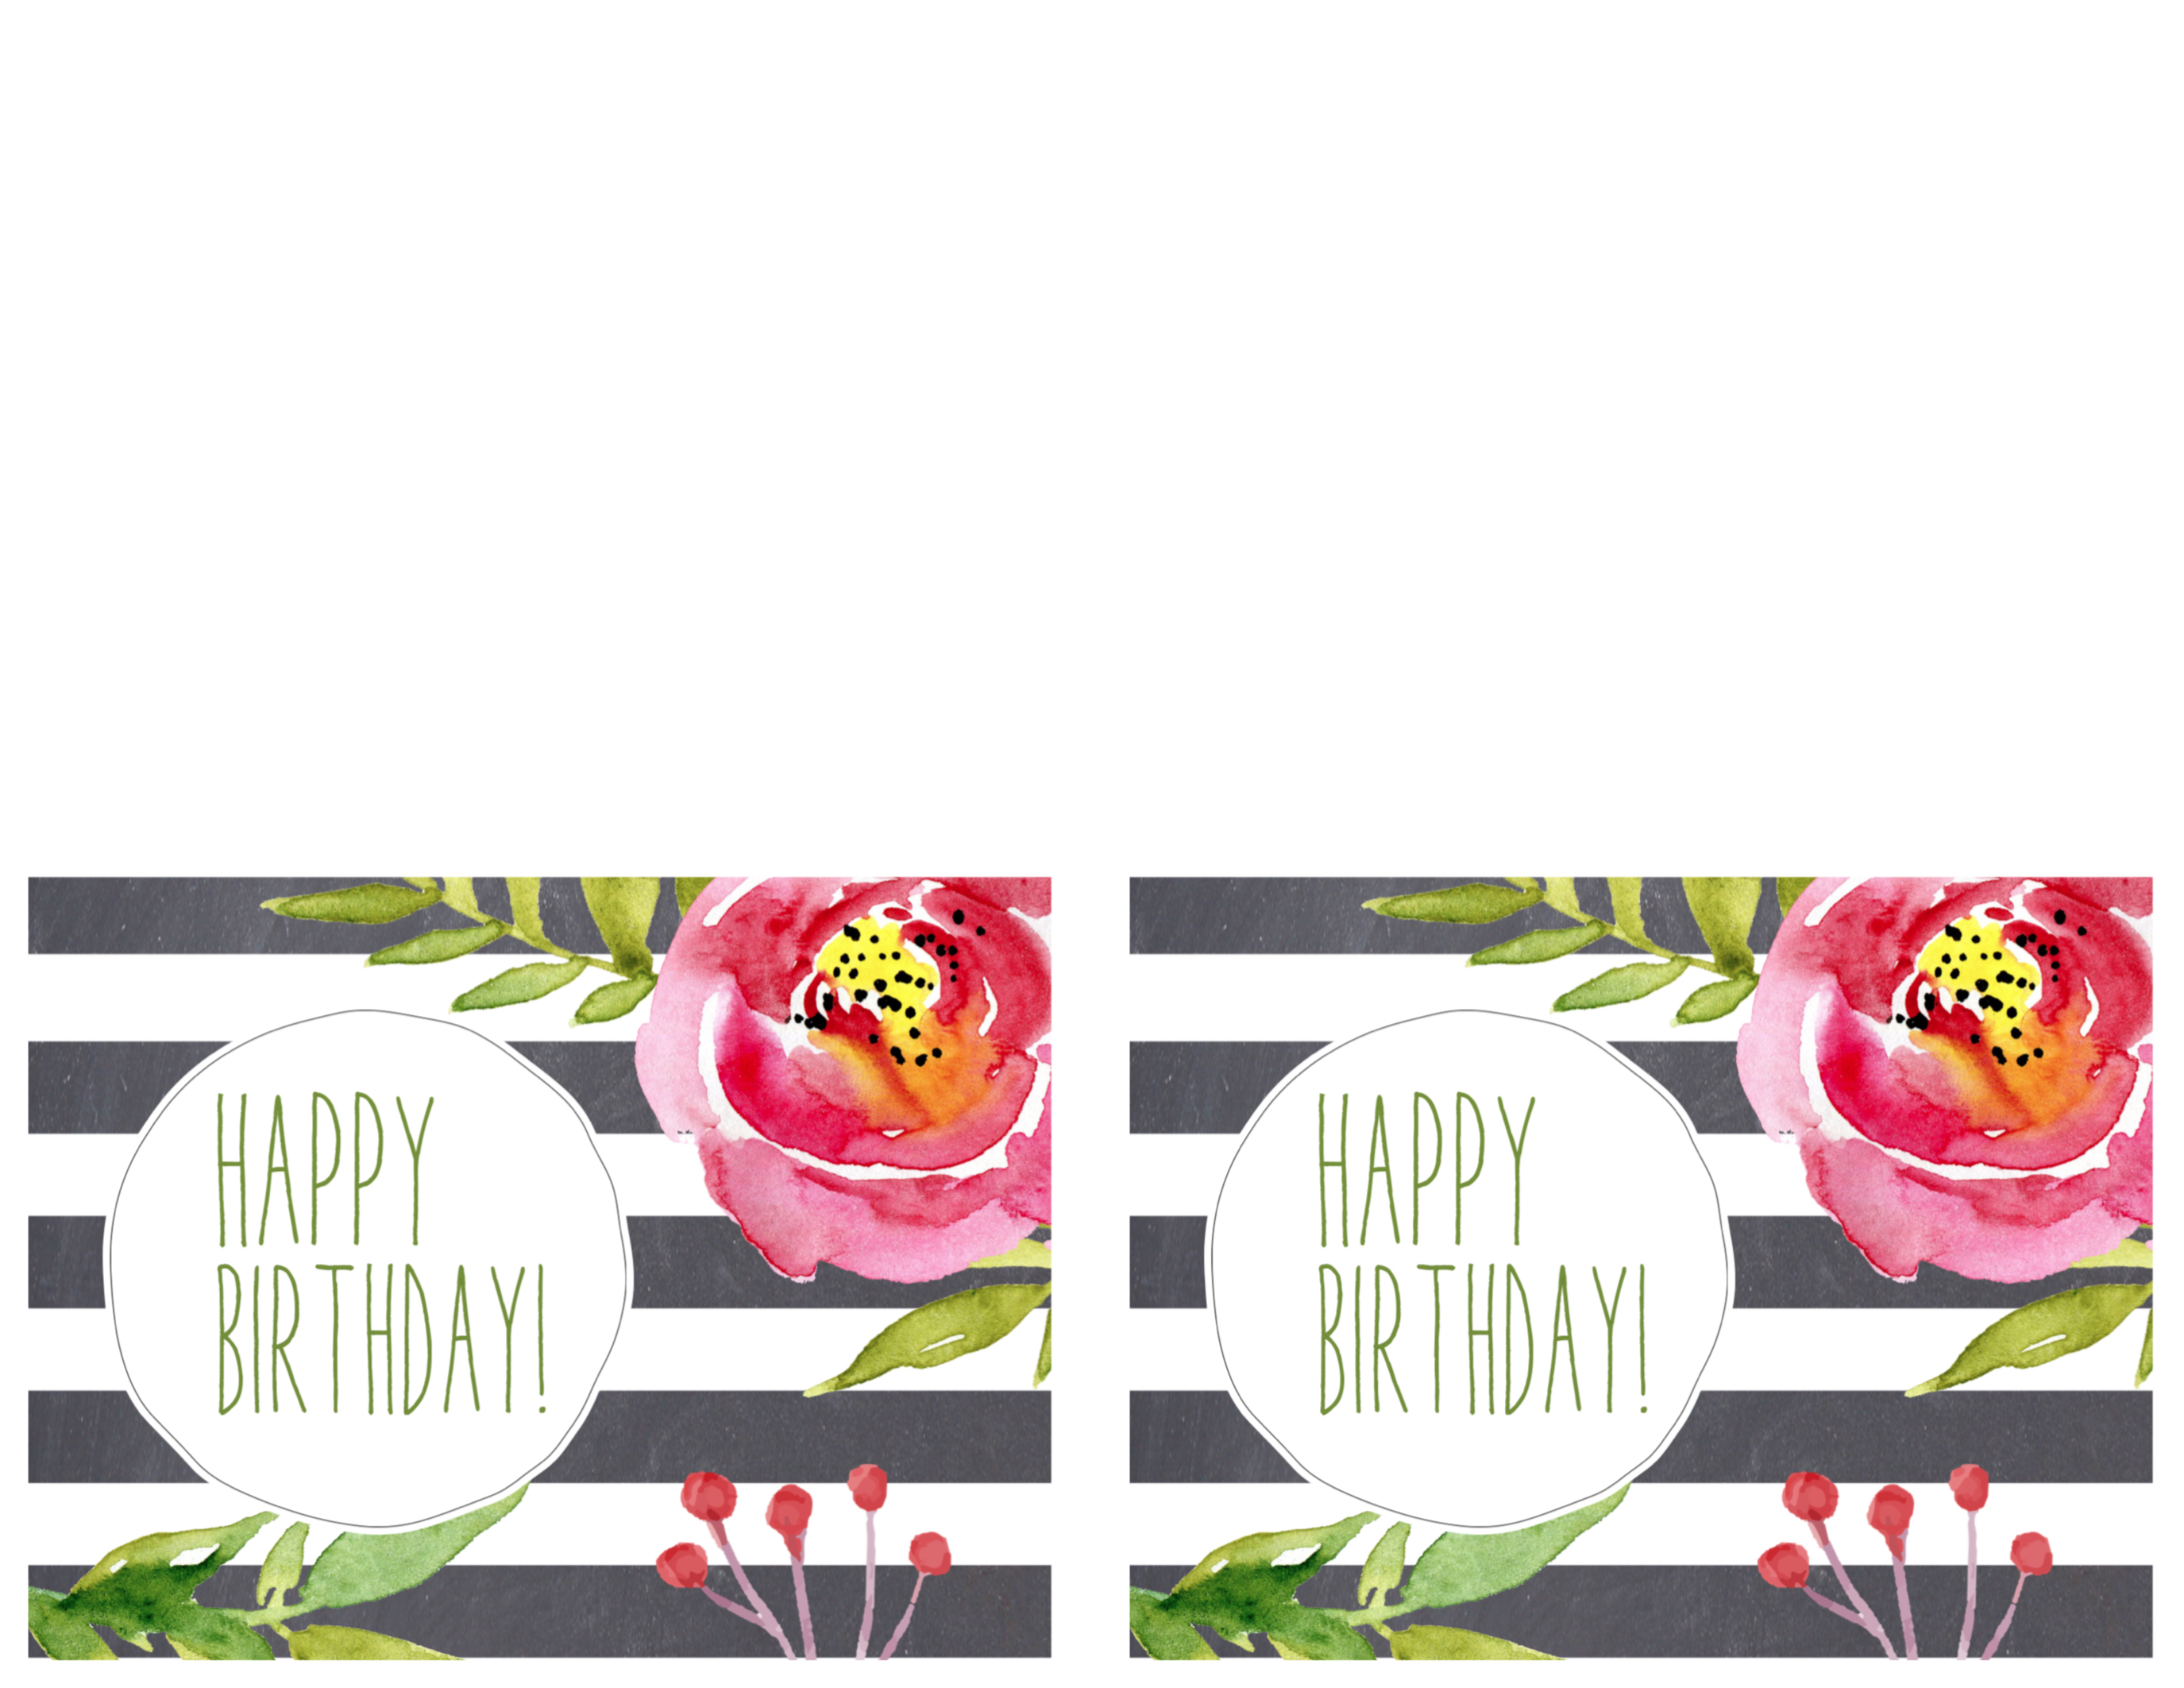 create free printable birthday cards online ; free-printable-greeting-cards-design-and-print-greeting-cards-online-free-greeting-cards-design-and-print-greeting-cards-online-free